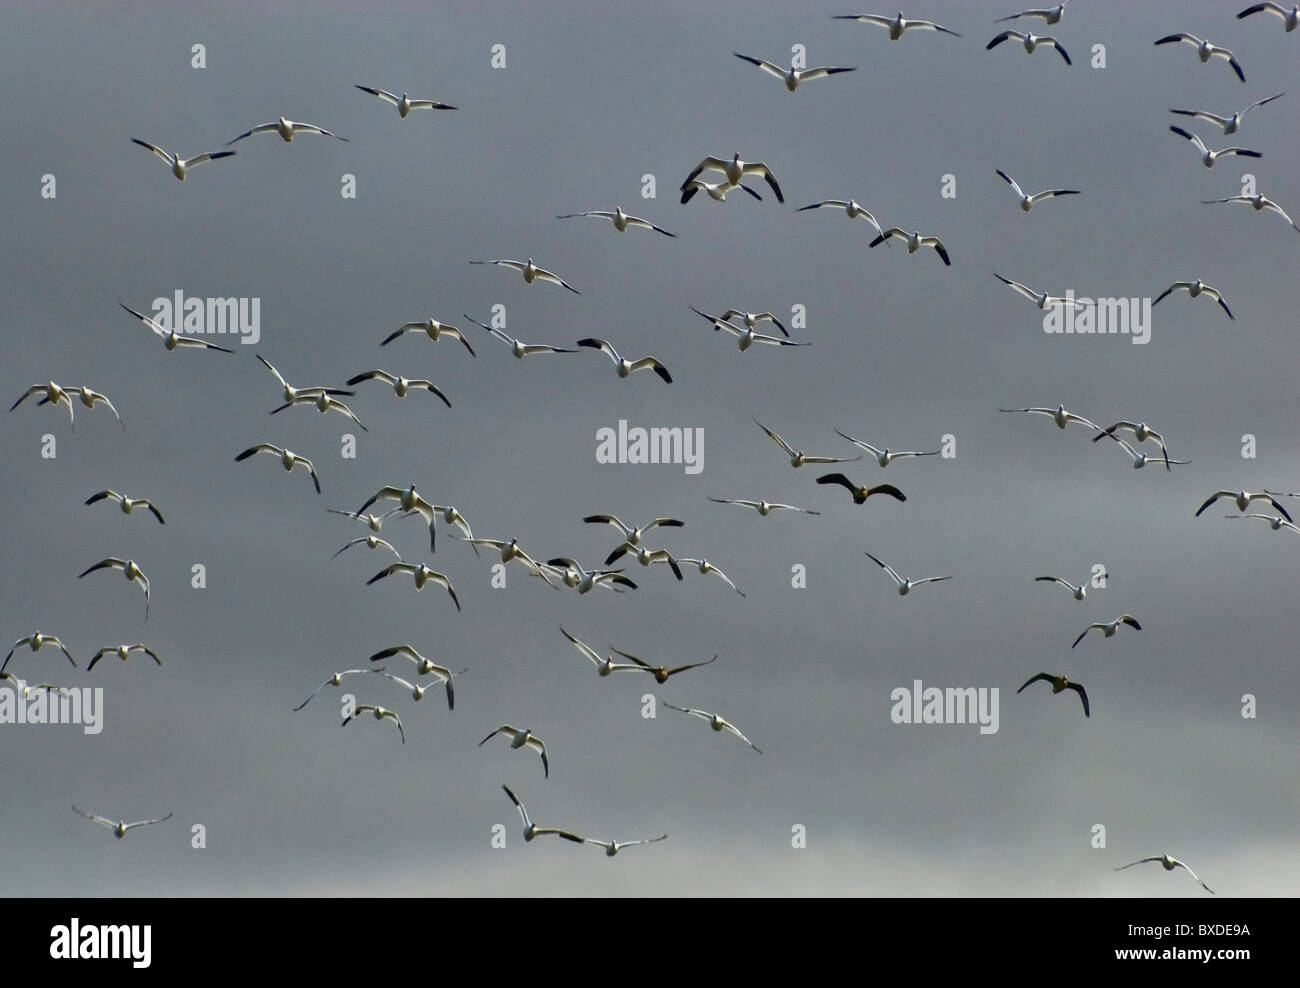 Flight of birds in March at Lower Klamath National Wildlife Refuge, California, USA - Stock Image